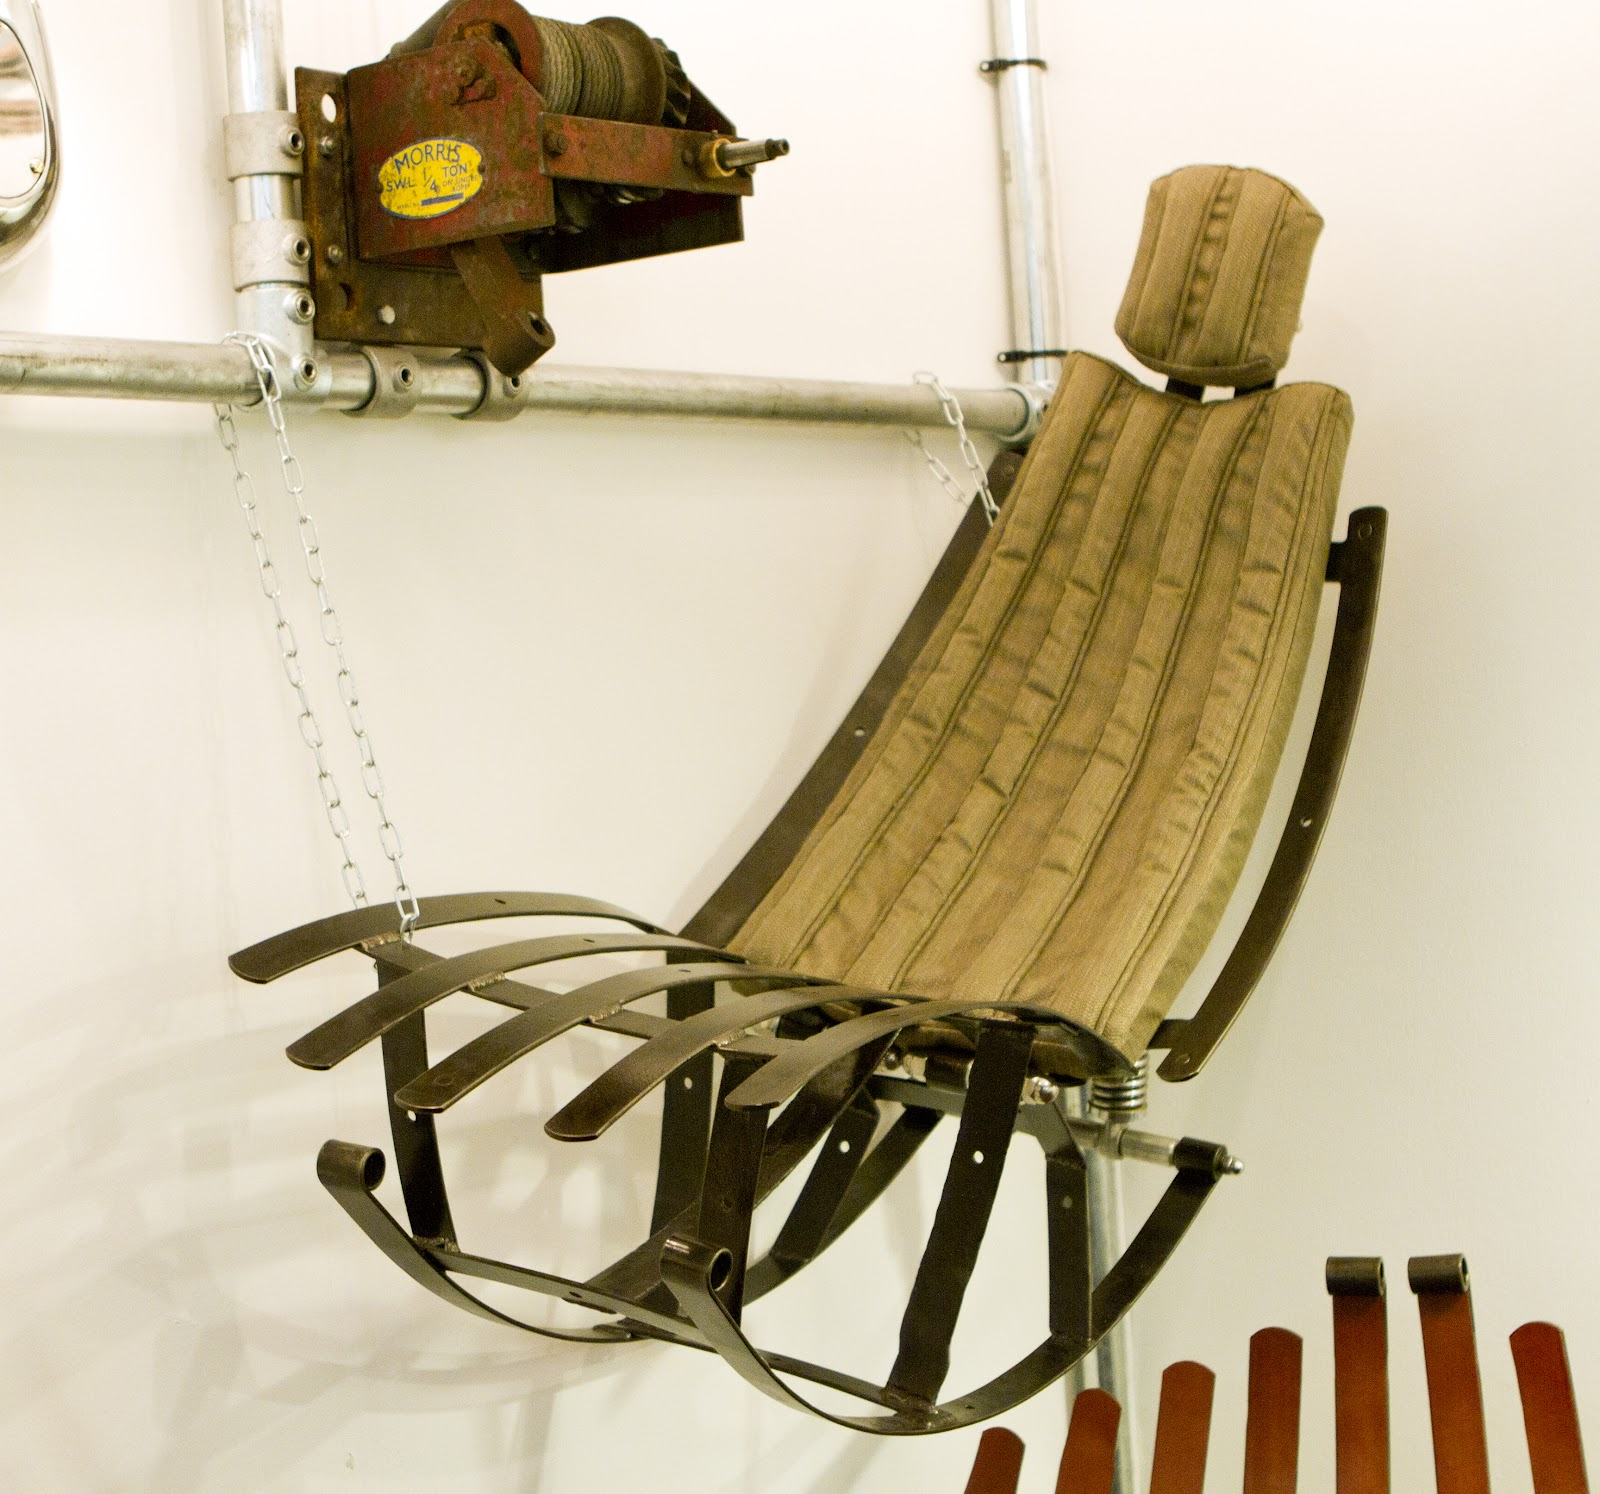 the rag and bone man LEAF SPRING CHAIRS